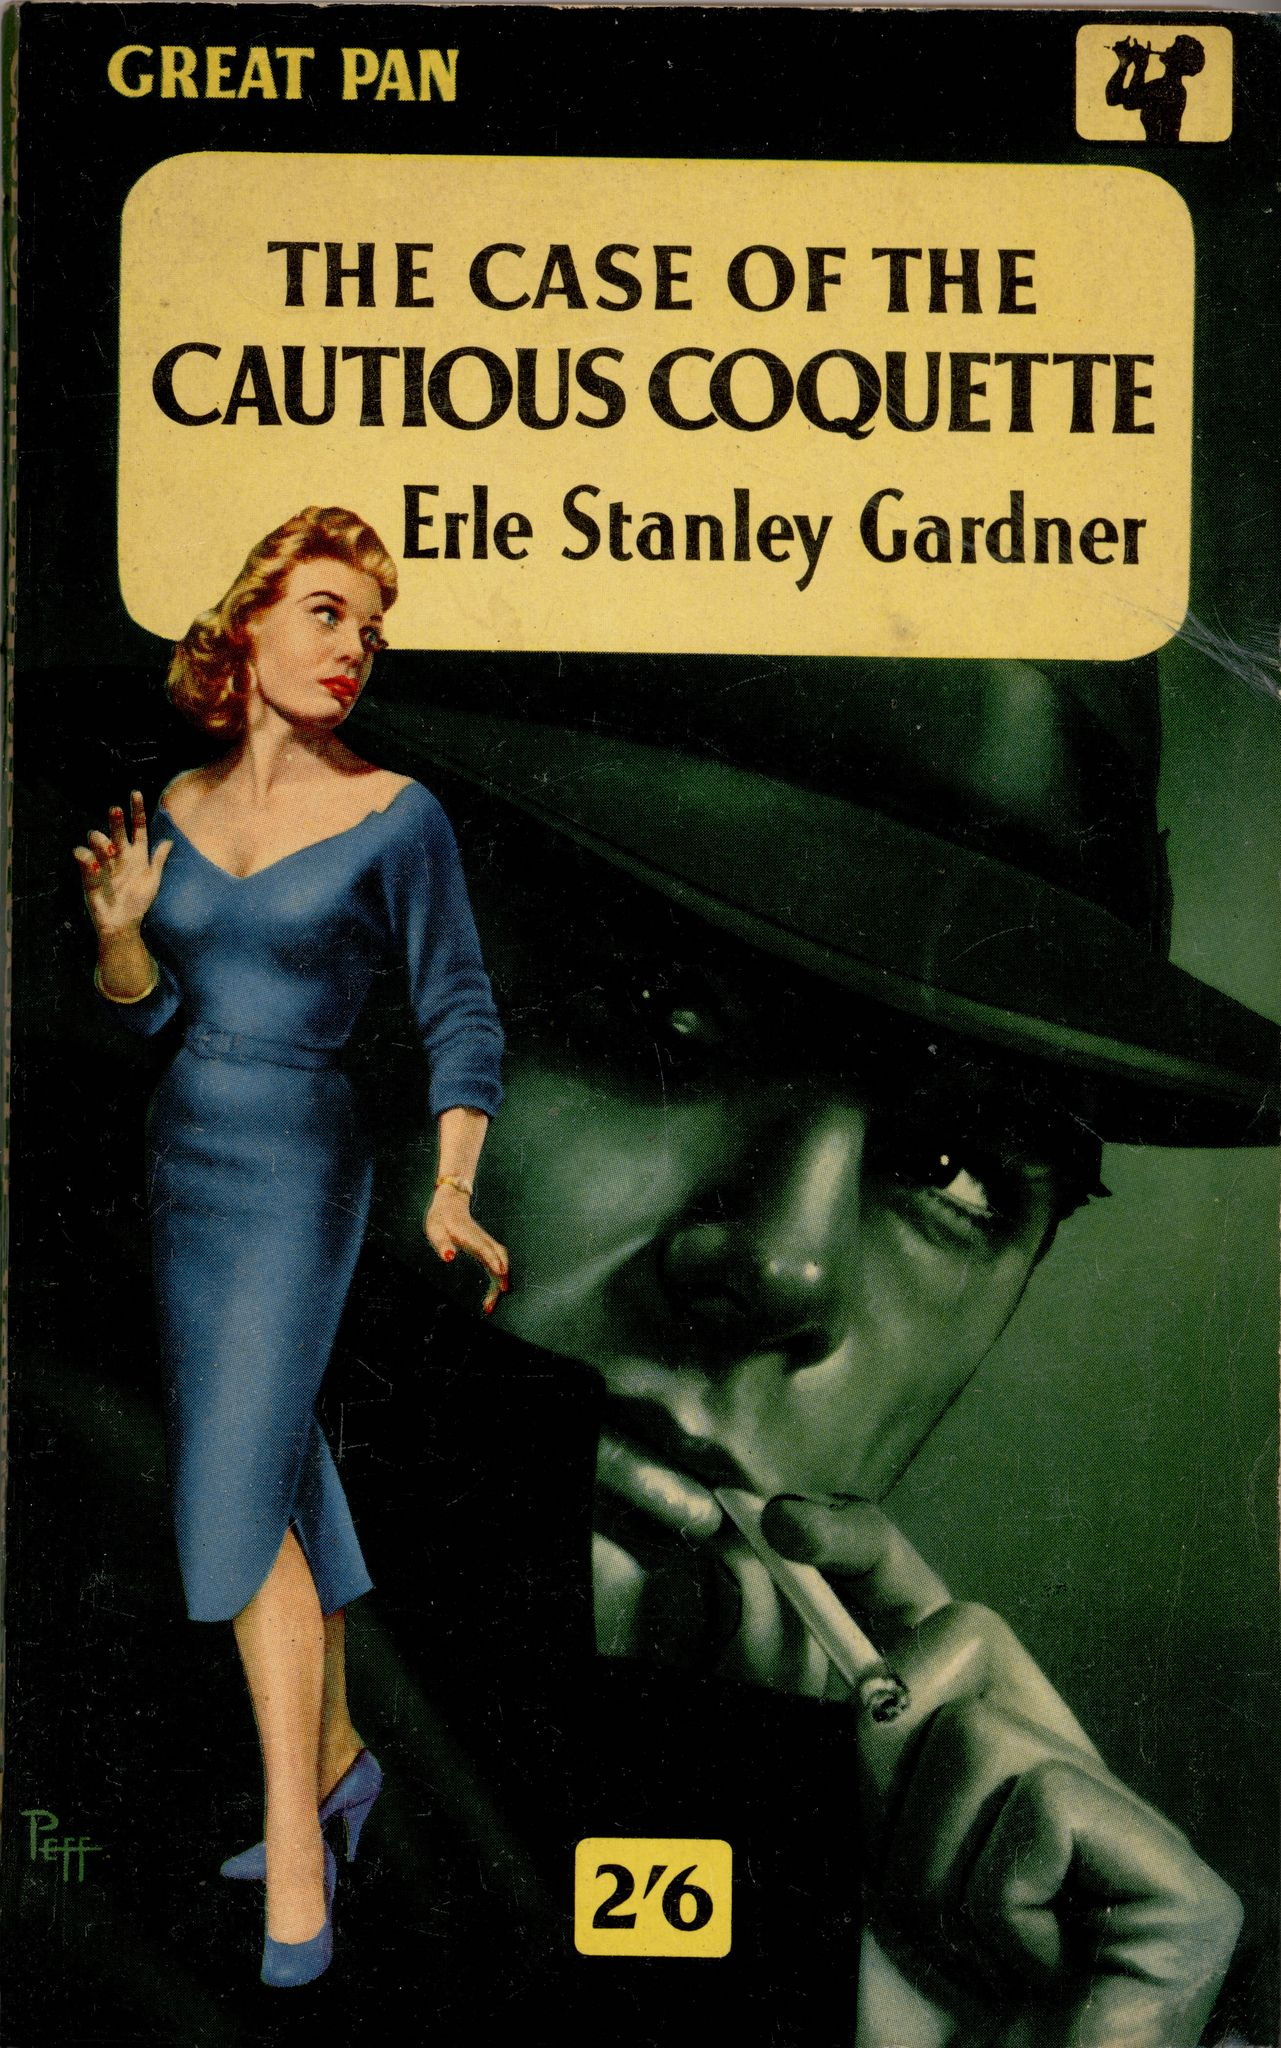 The Case of the Cautious Coquette (Perry Mason, Book 34) | Originally published in 1949 | This is a paperback Great Pan edition.